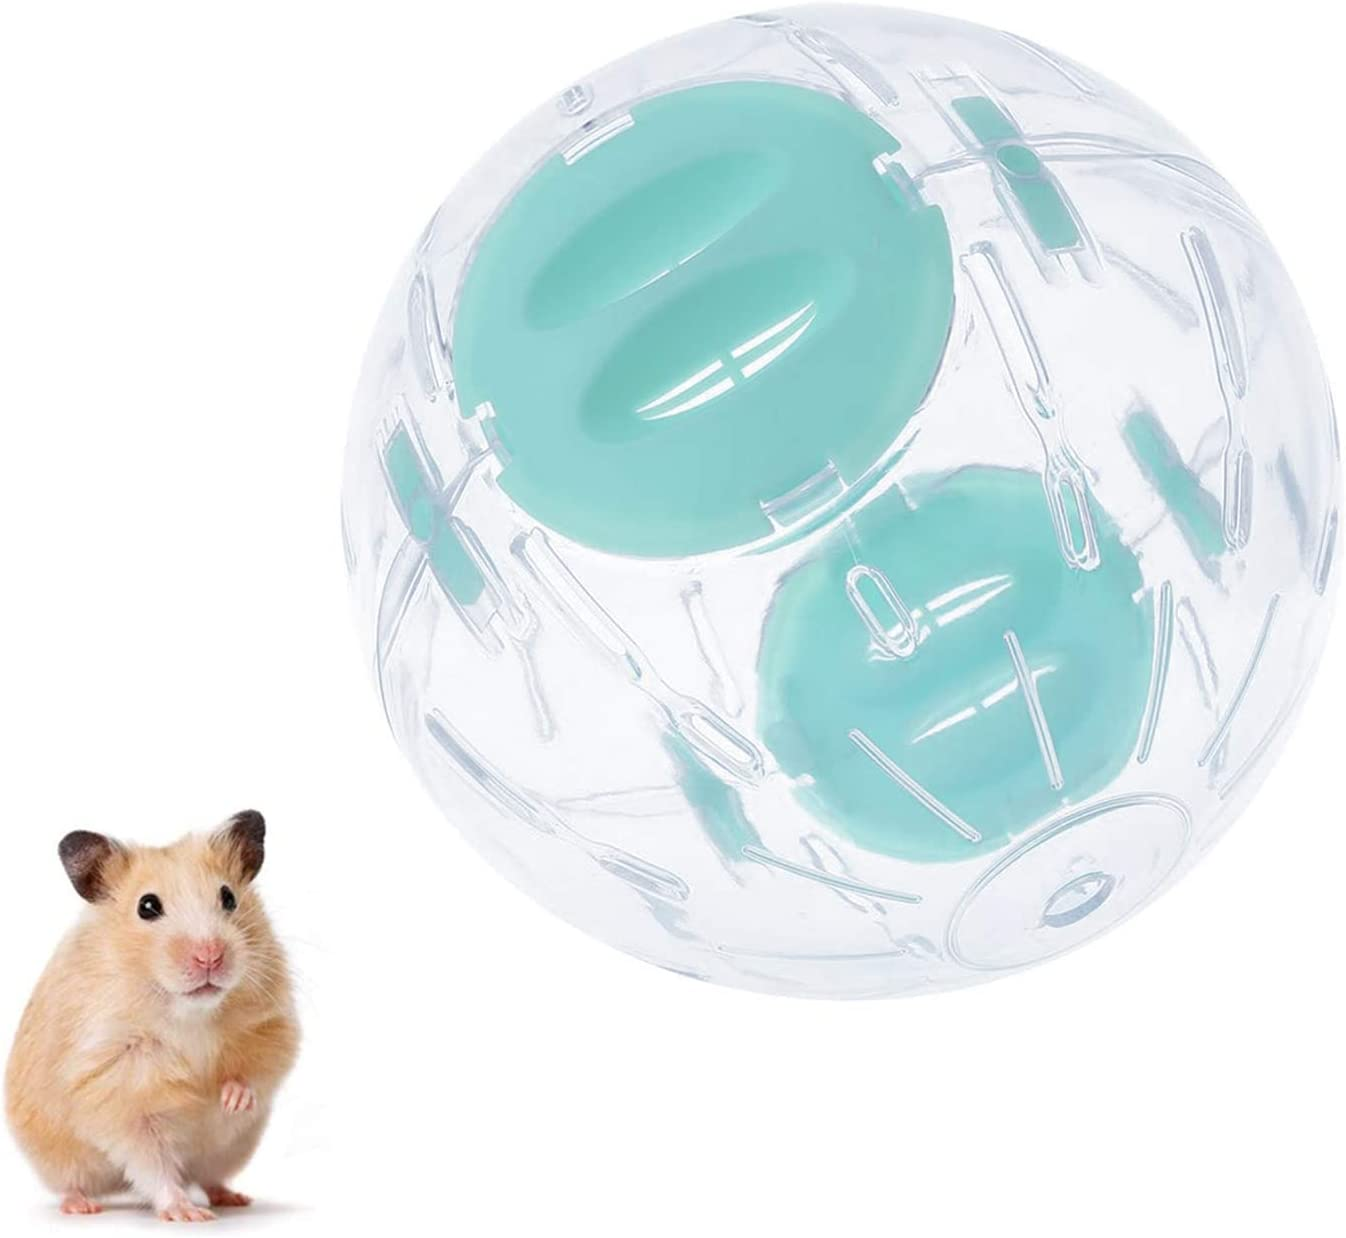 WishLotus Hamster Exercise Ball B Transparent 5.51 67% Ranking TOP15 OFF of fixed price Inch